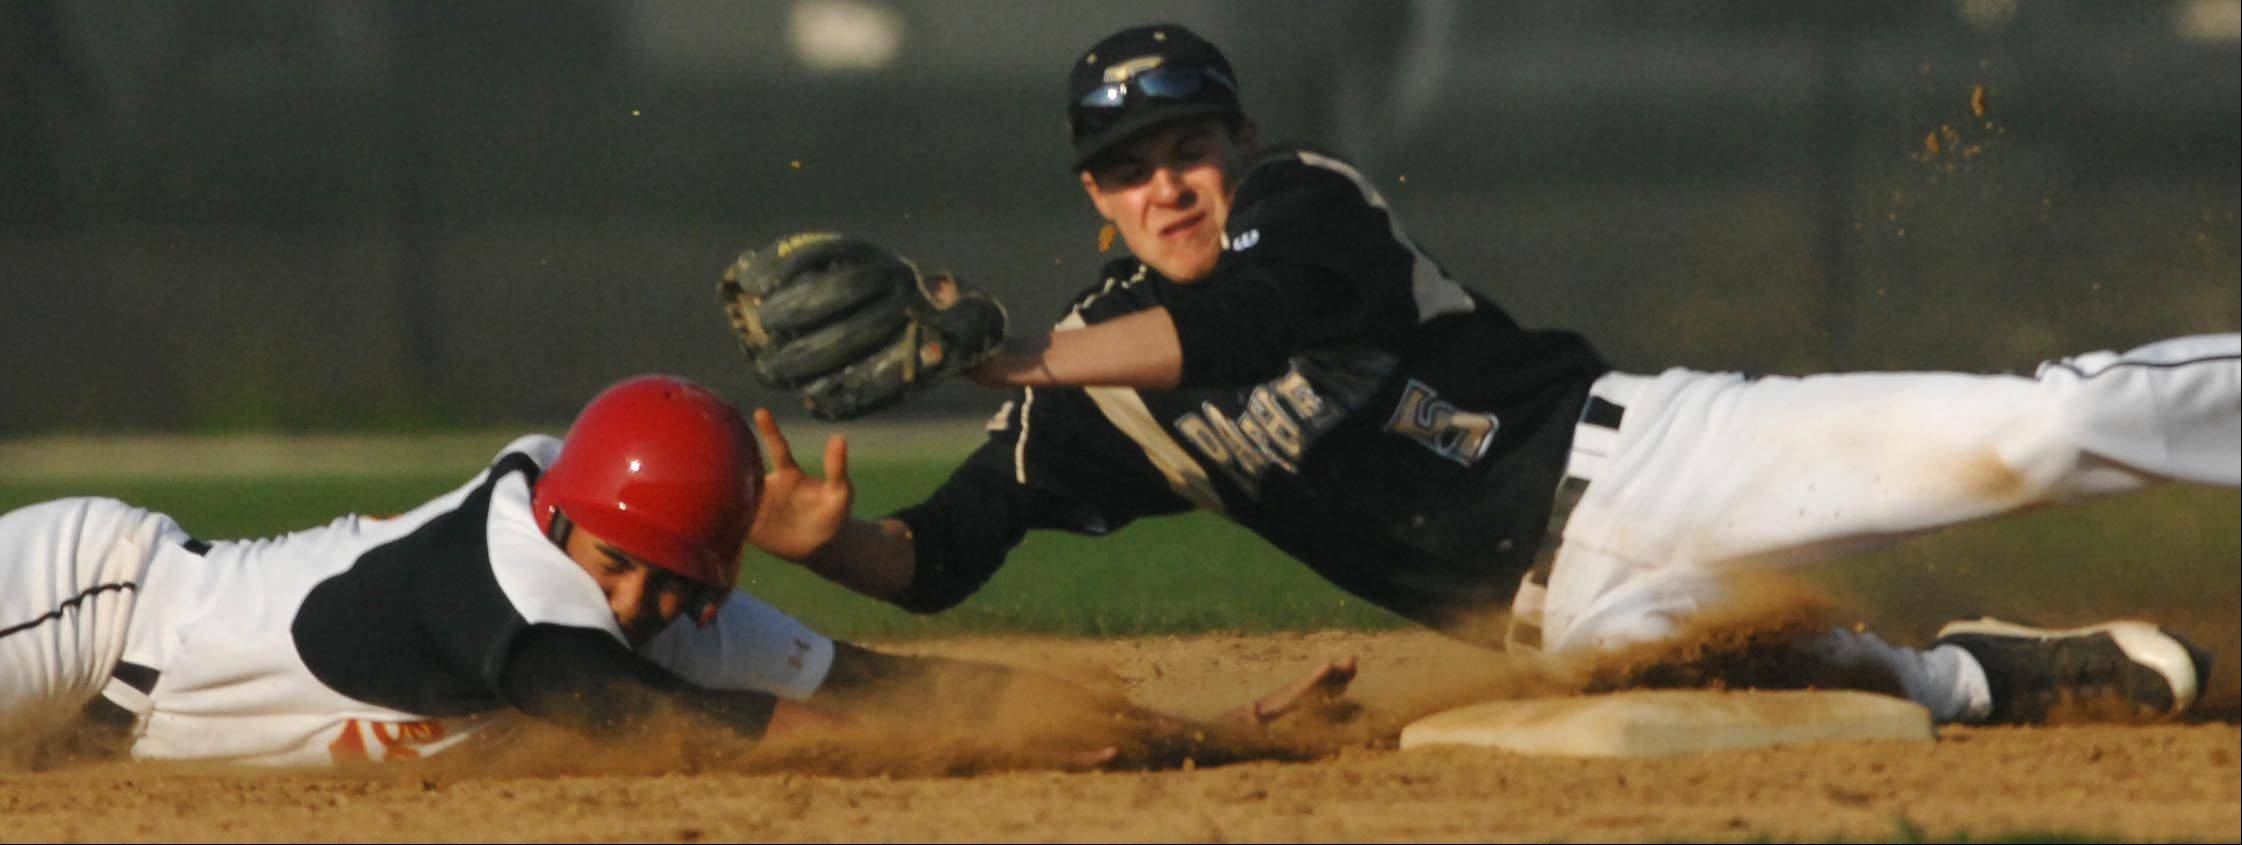 Batavia's Laren Eustace stretches to second ahead of Glenbard North shortstop Matt Albin Monday in Batavia.